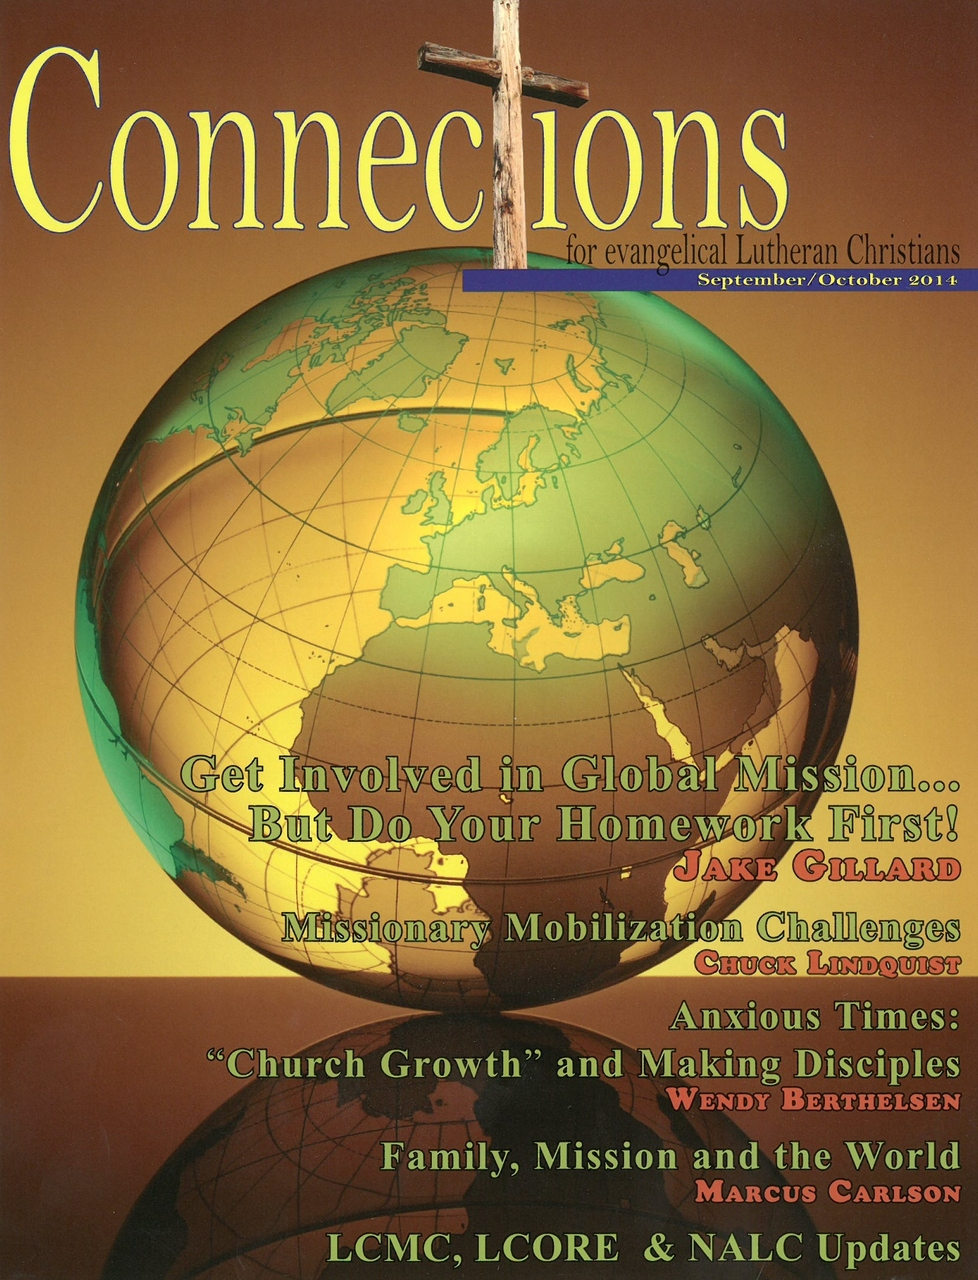 Connections Back Issue Sept/Oct '14 P-D145